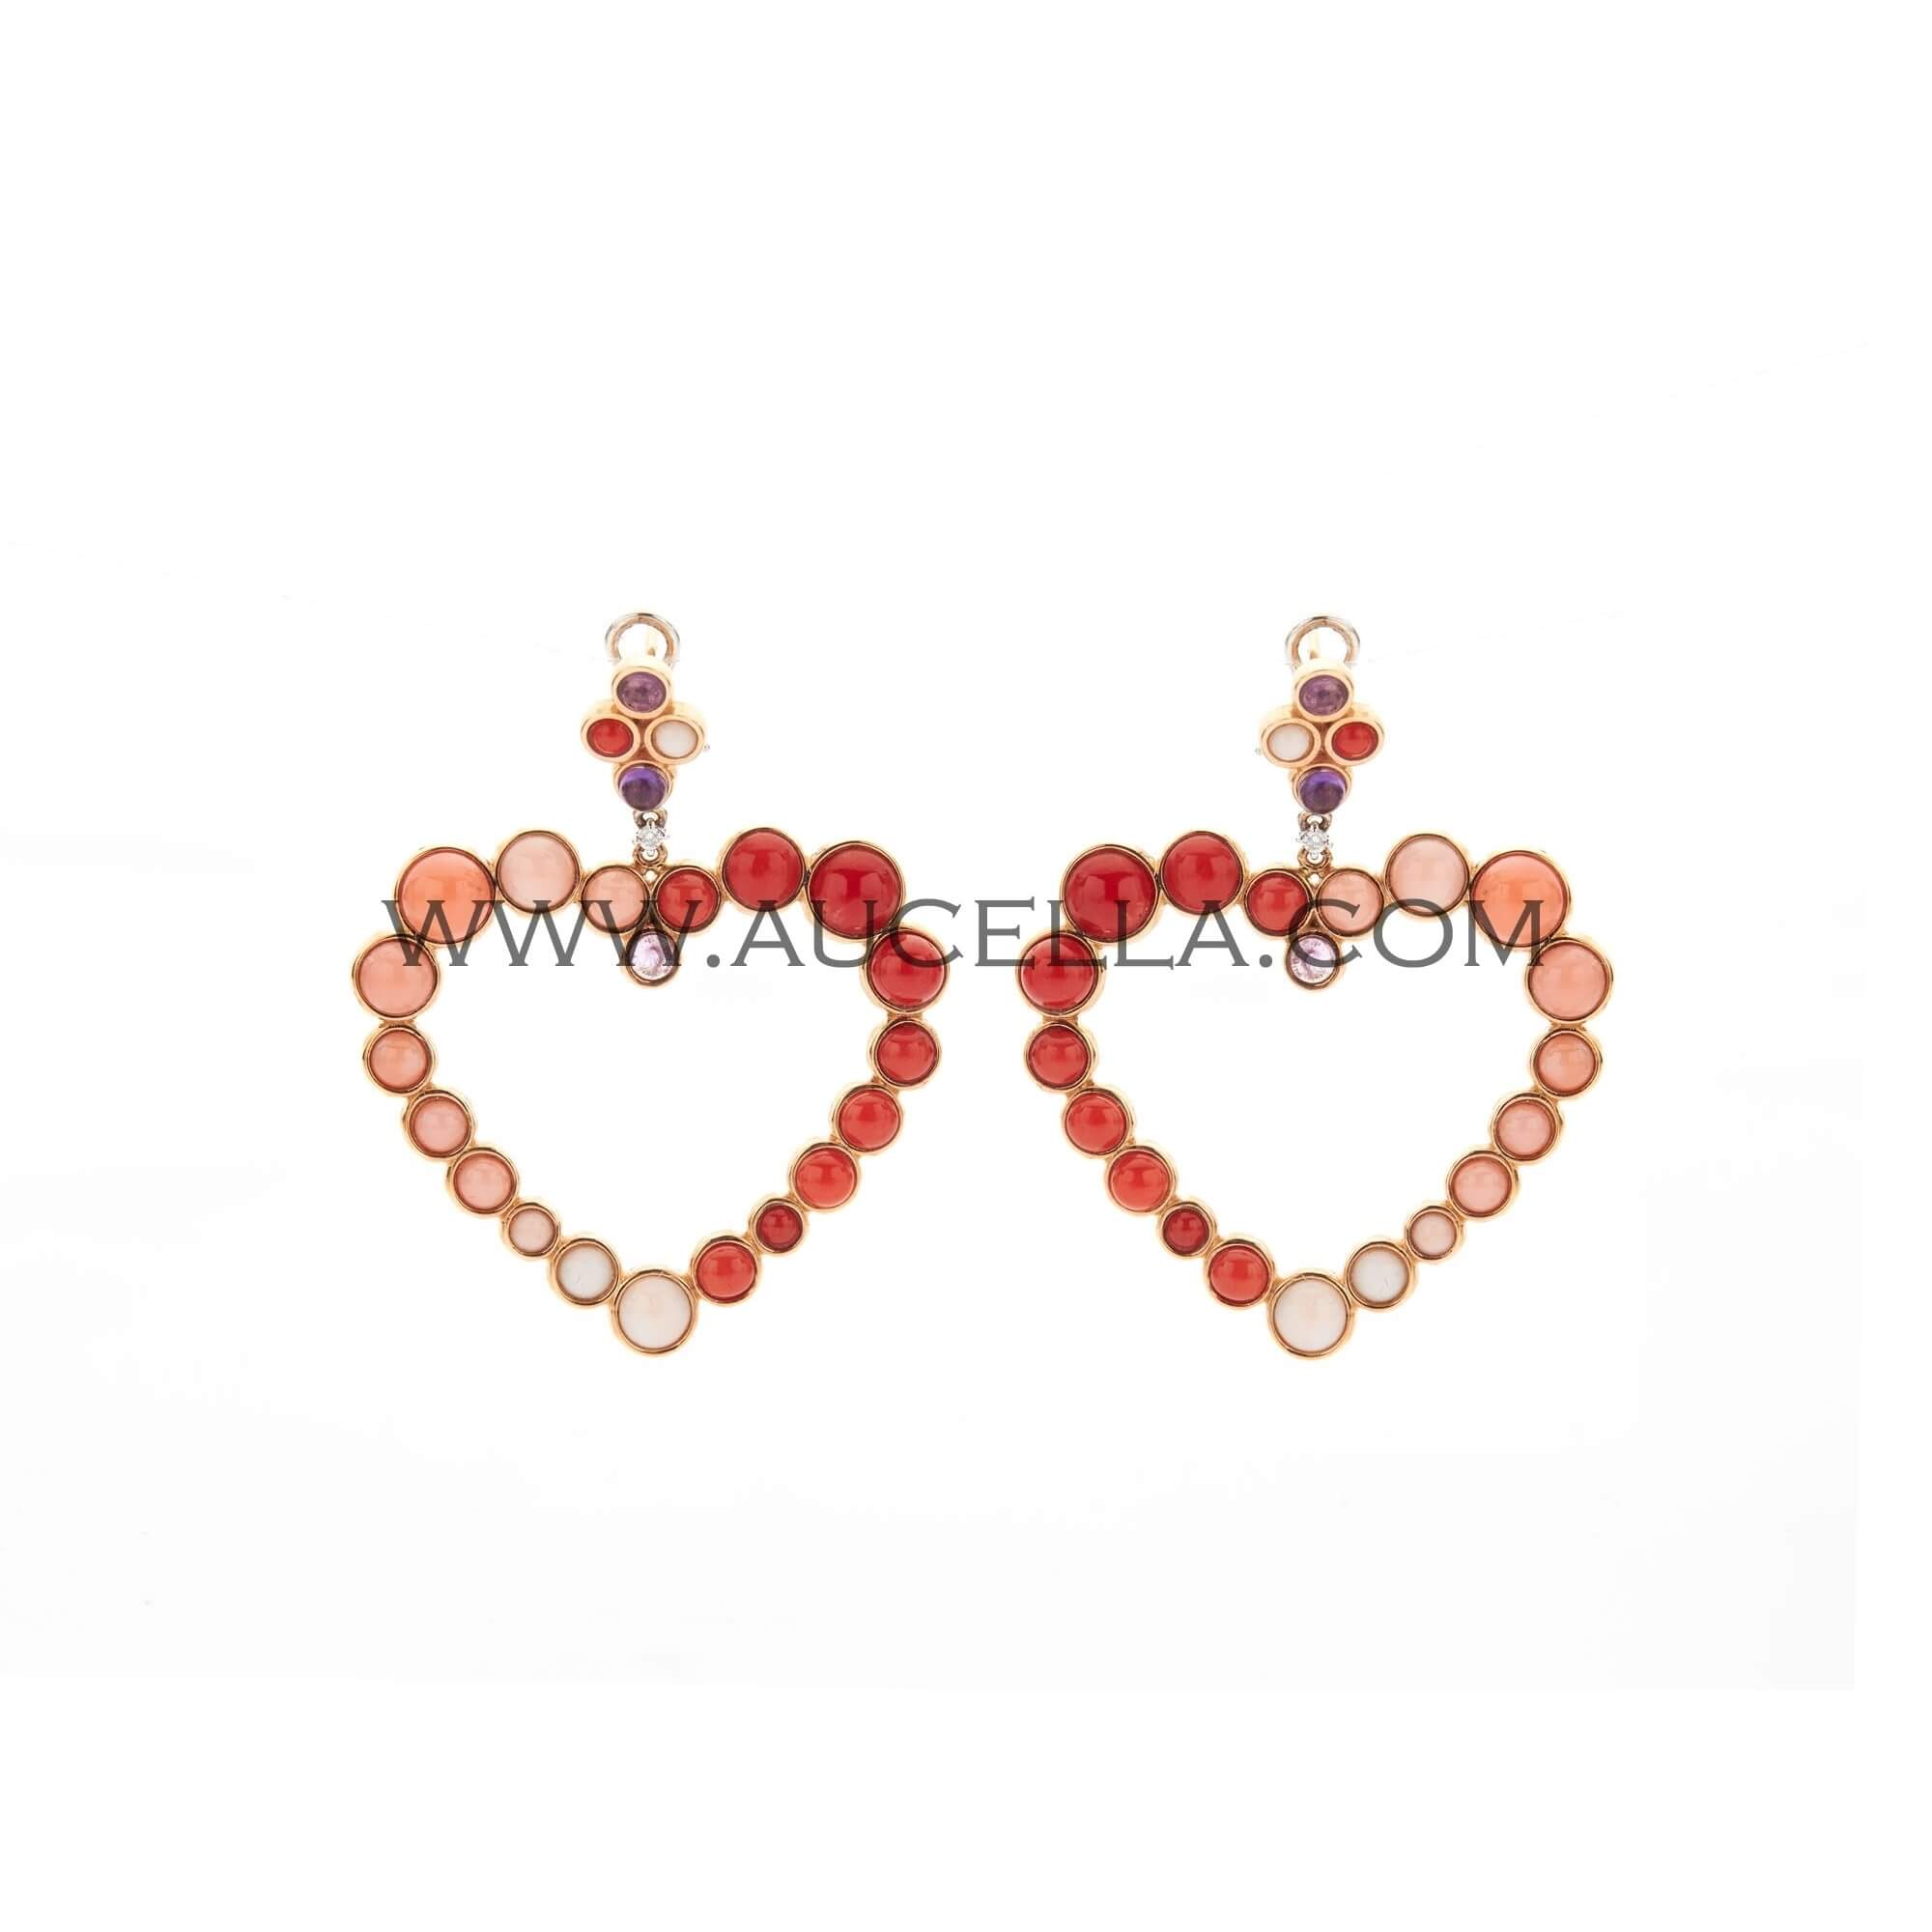 Earrings luxury heart model